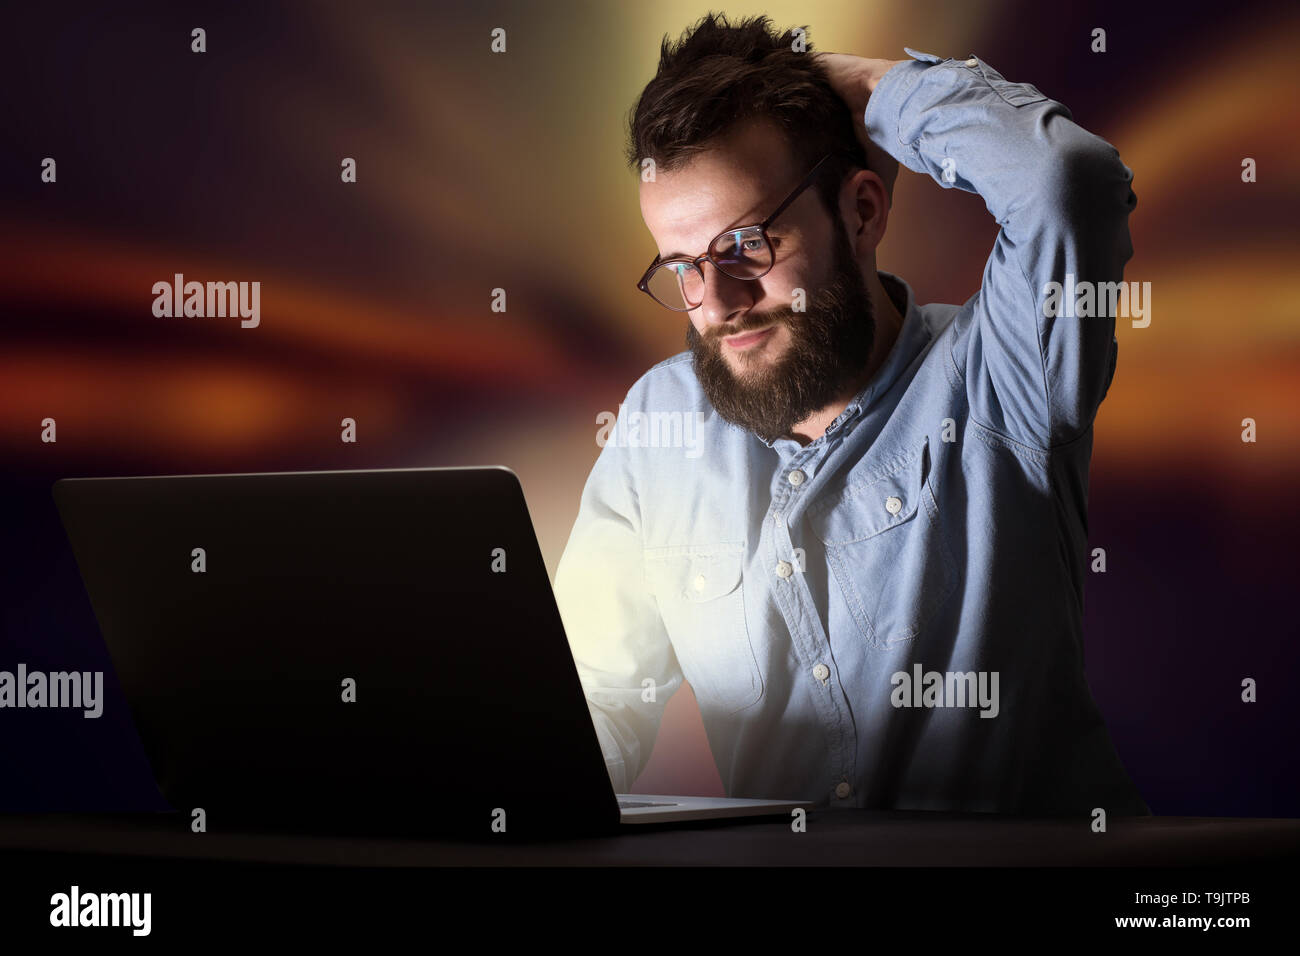 Young handsome businessman working late at night in the office with warm lights in the background - Stock Image